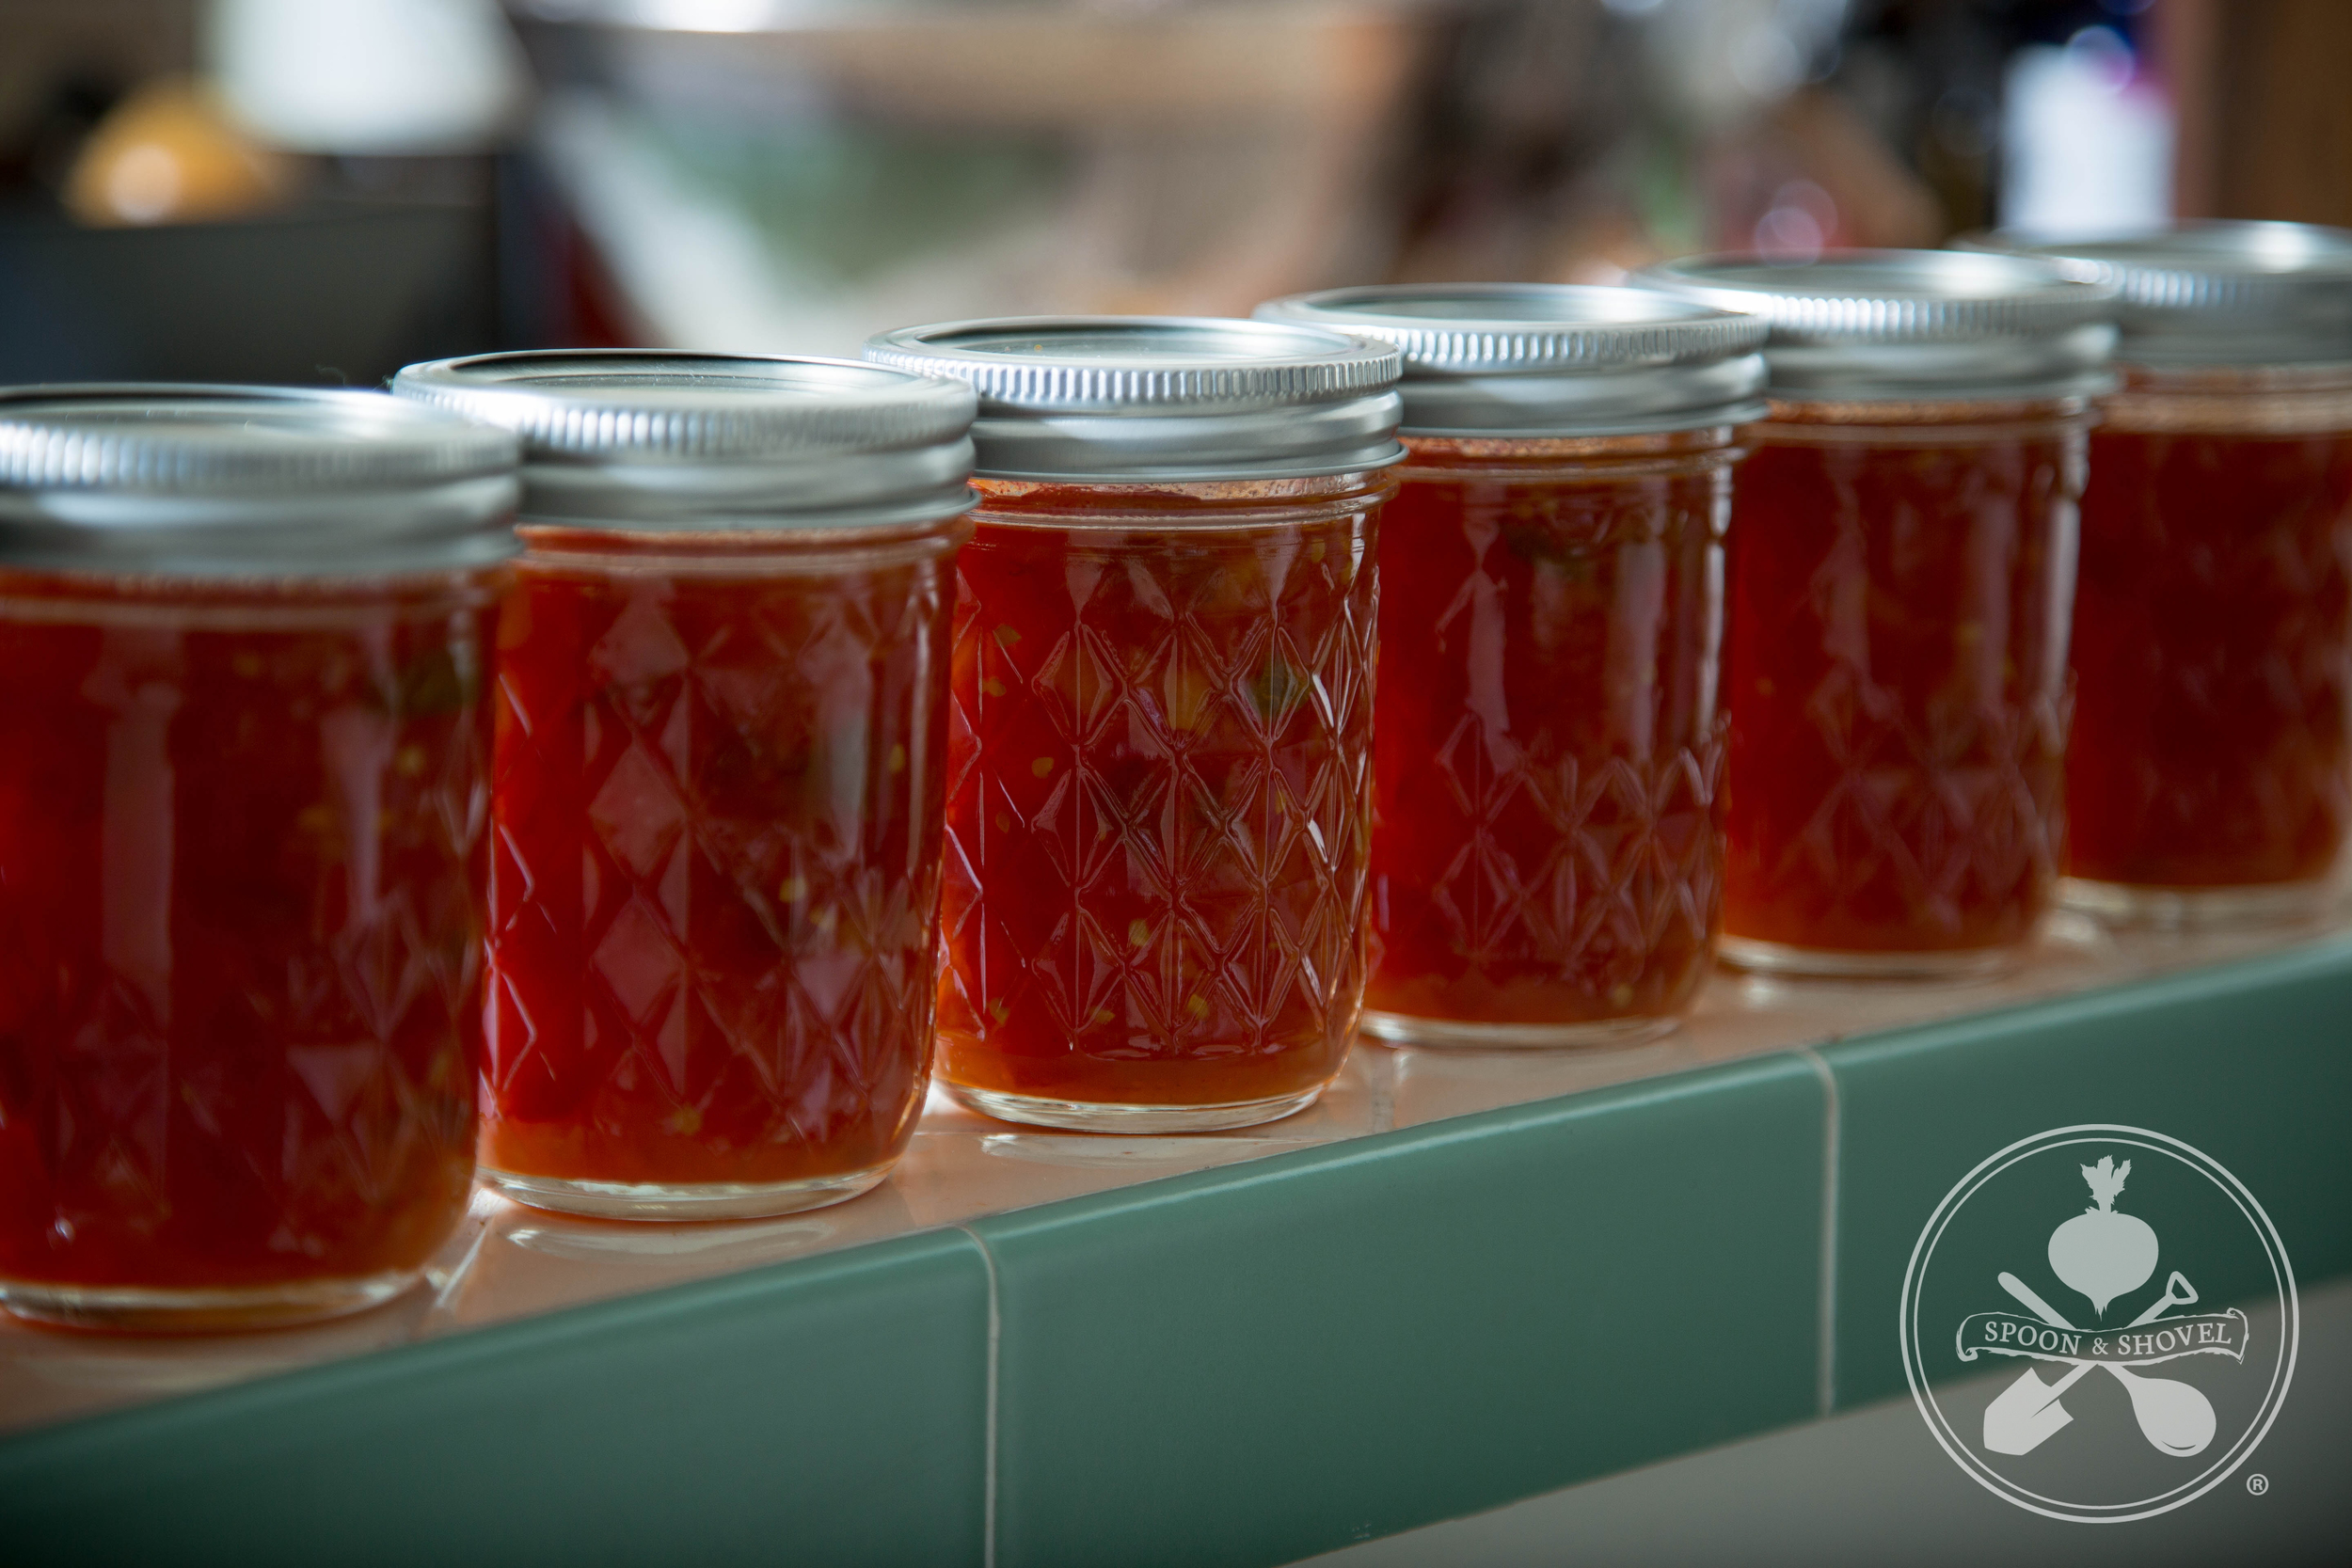 Sweet & hot pepper relish from The Spoon + Shovel